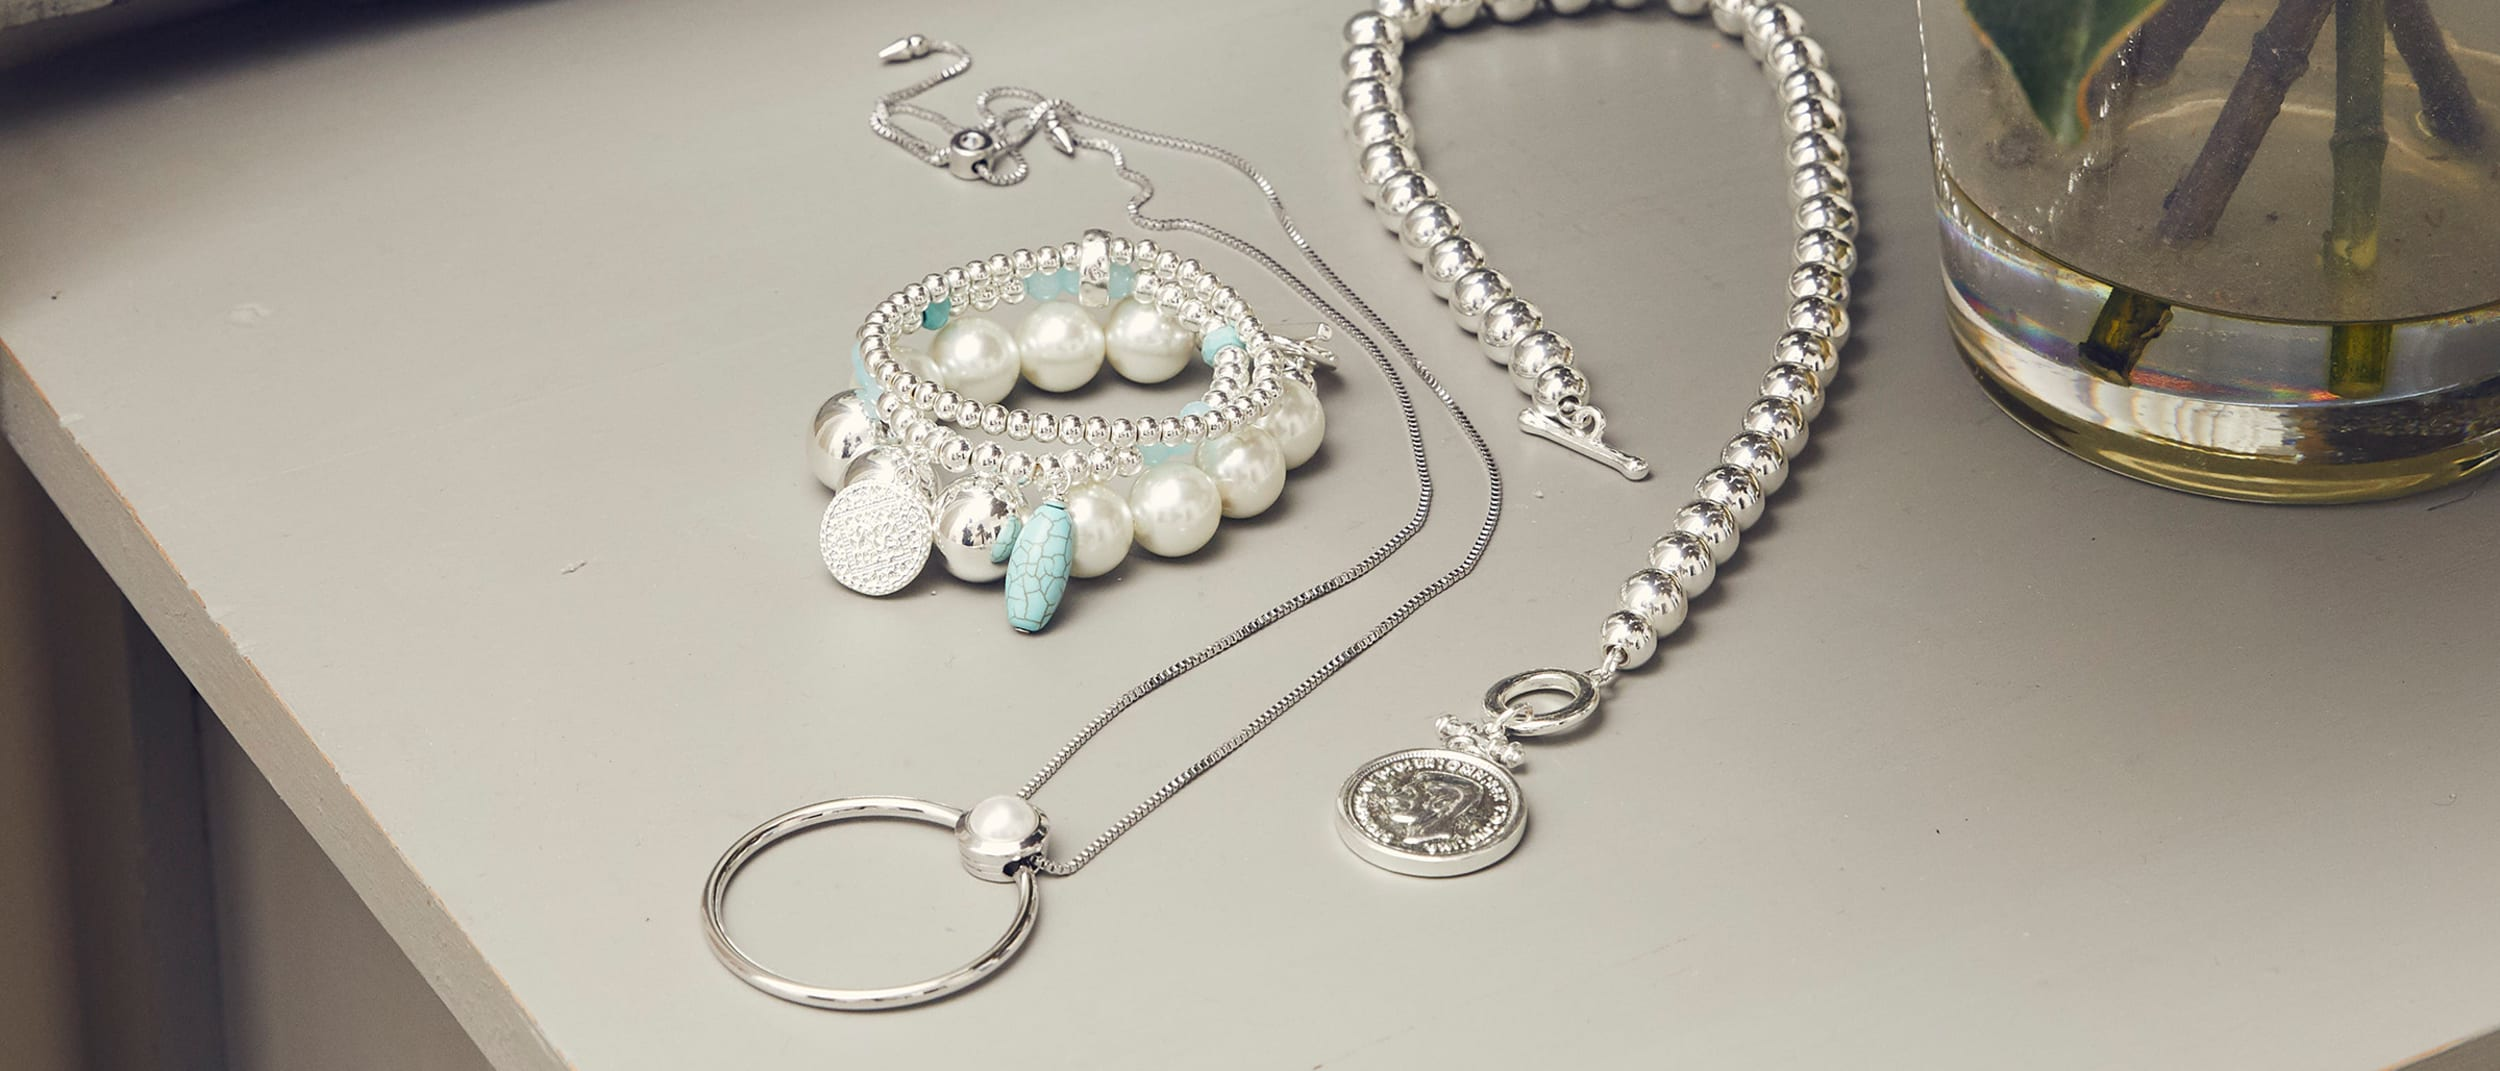 Blue Illusion: take 30% off jewellery. Limited time only.